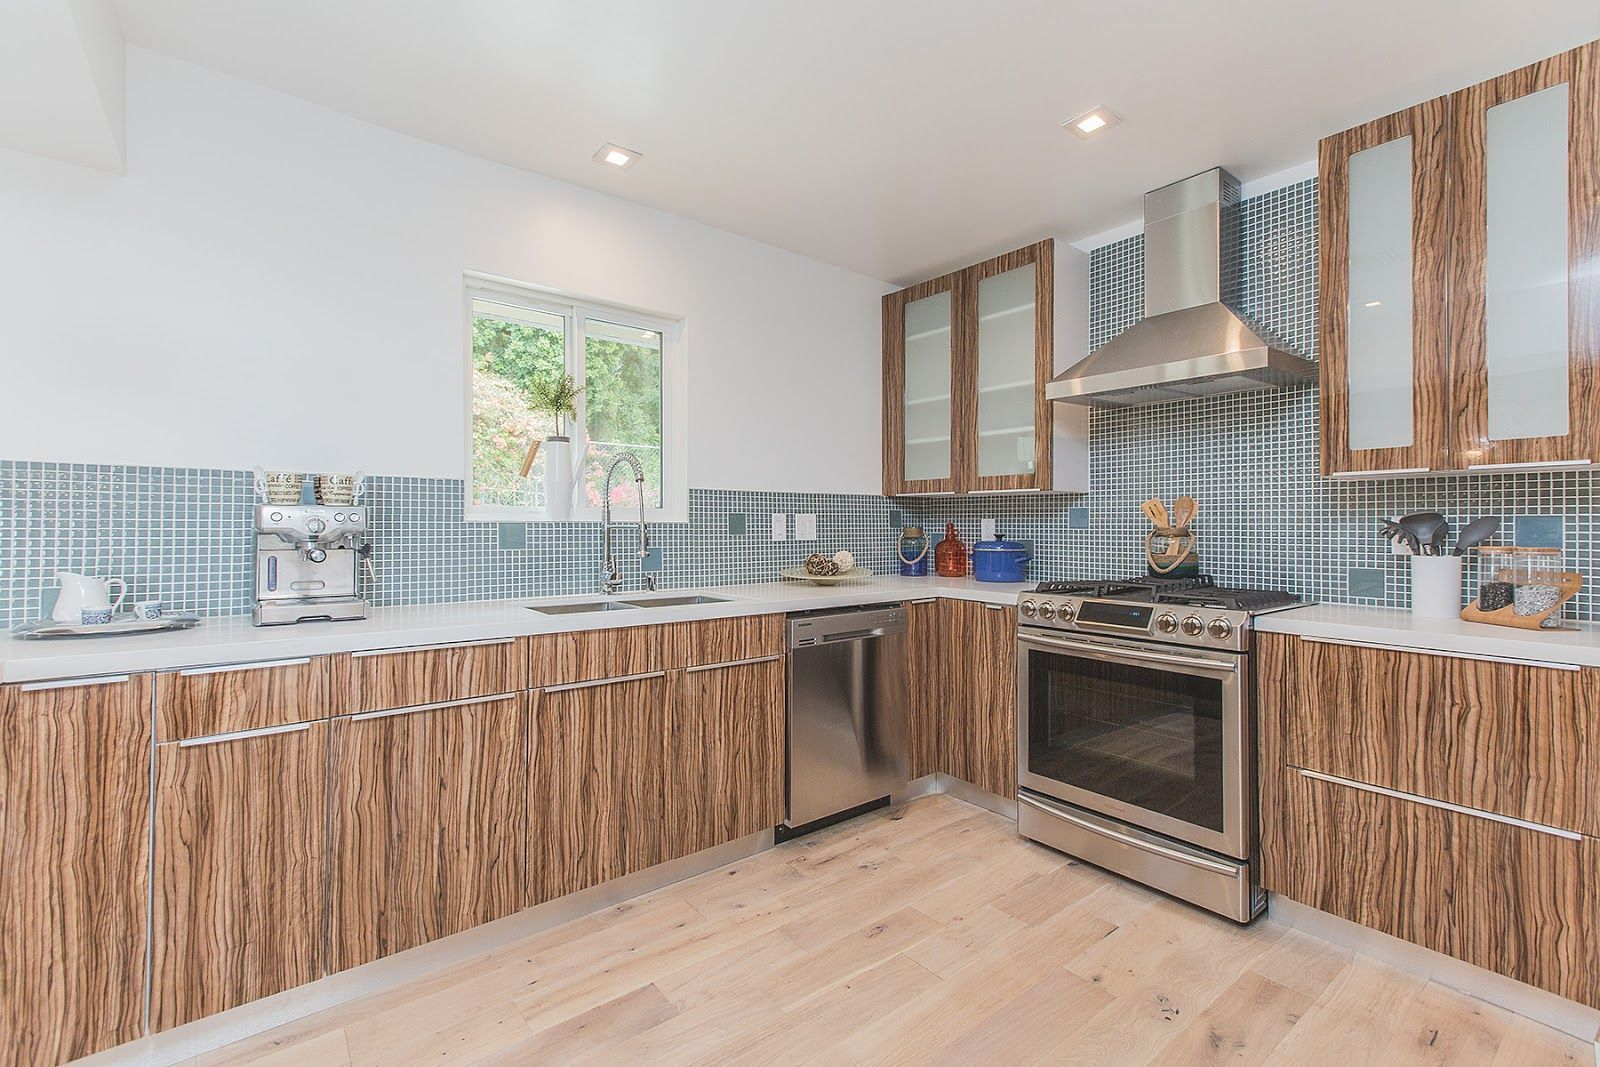 Kitchen Without Upper Cabinets Kitchen Without Upper Cabinets Kitchen Without Island Kitchen Design